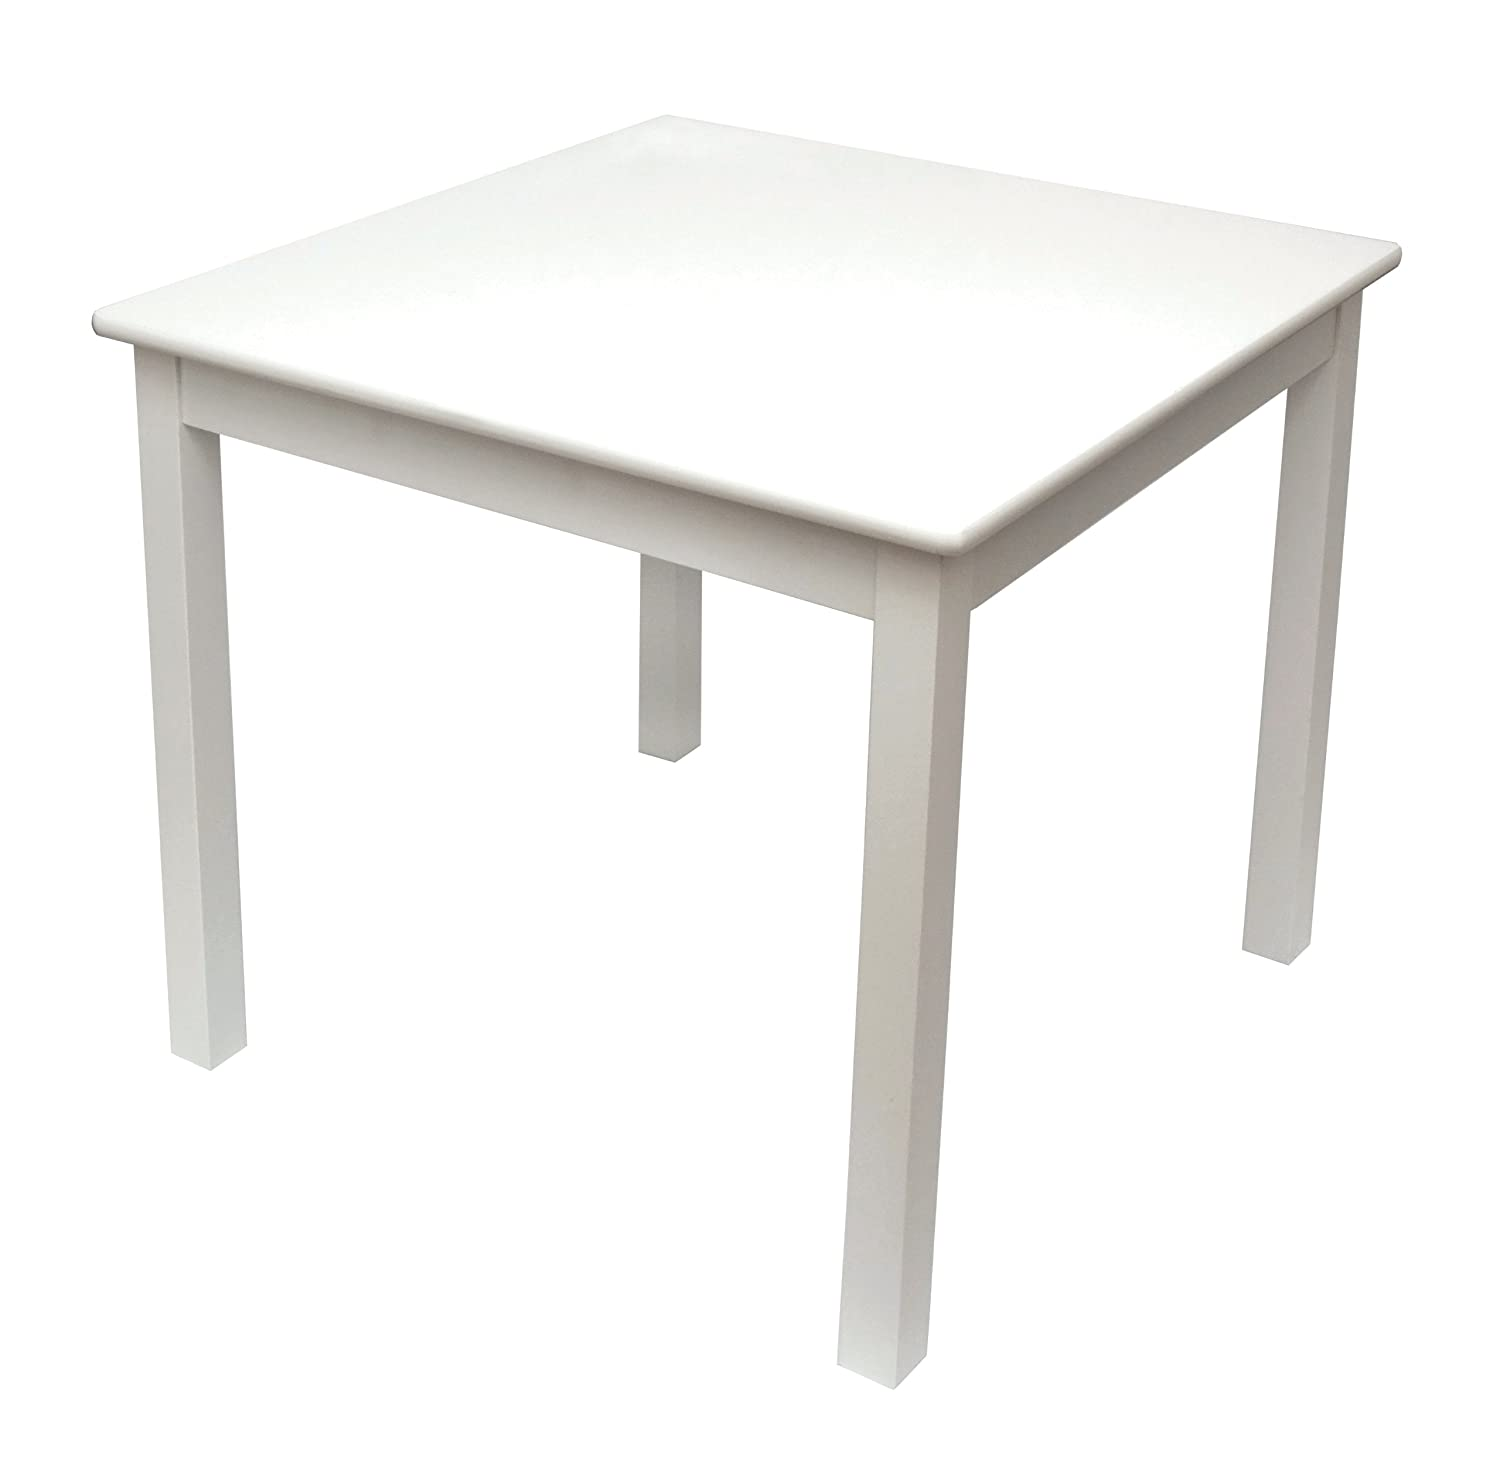 Lipper International 520W Child's Table for Play or Activity, 23.75 x 23.75 Square, 21.66 Tall, White 21.66 Tall